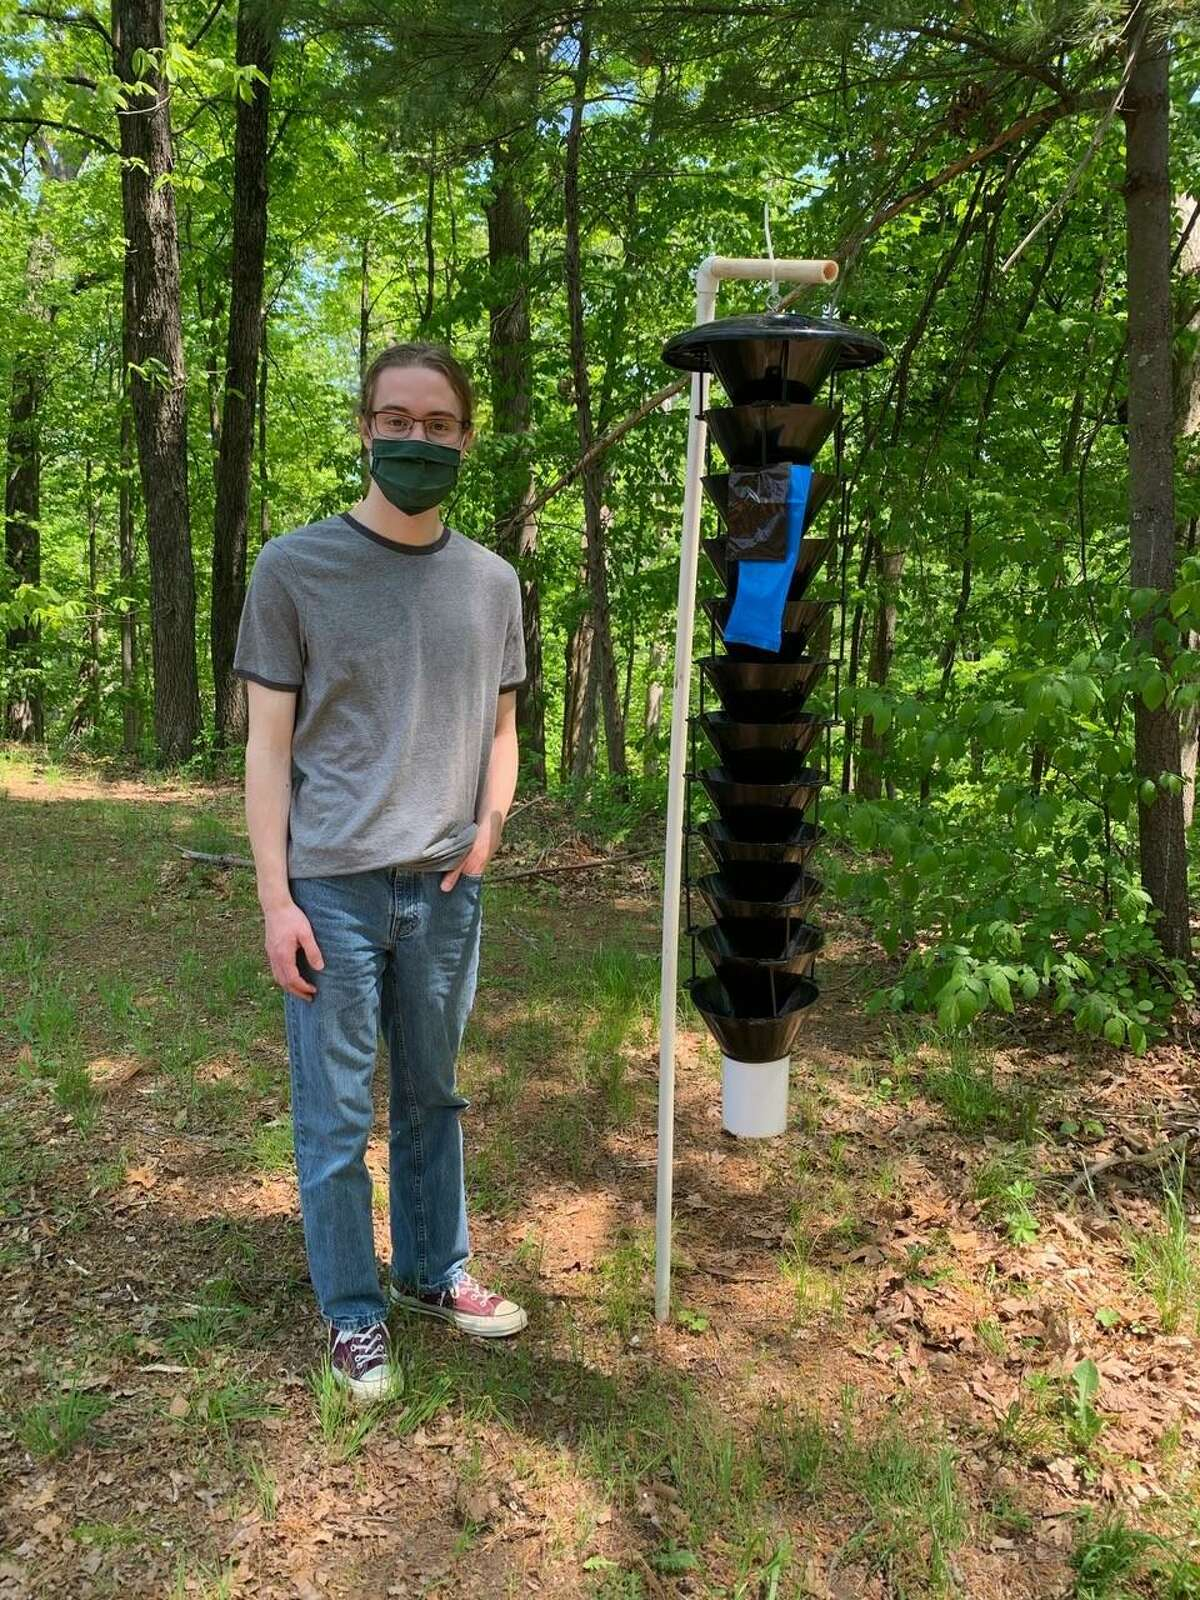 Recent Ridgefield High School graduate Jacob Corsilia sets up a Lindgren funnel to monitor for the invasive forest insect, the southern pine beetle, in Fairfield County.